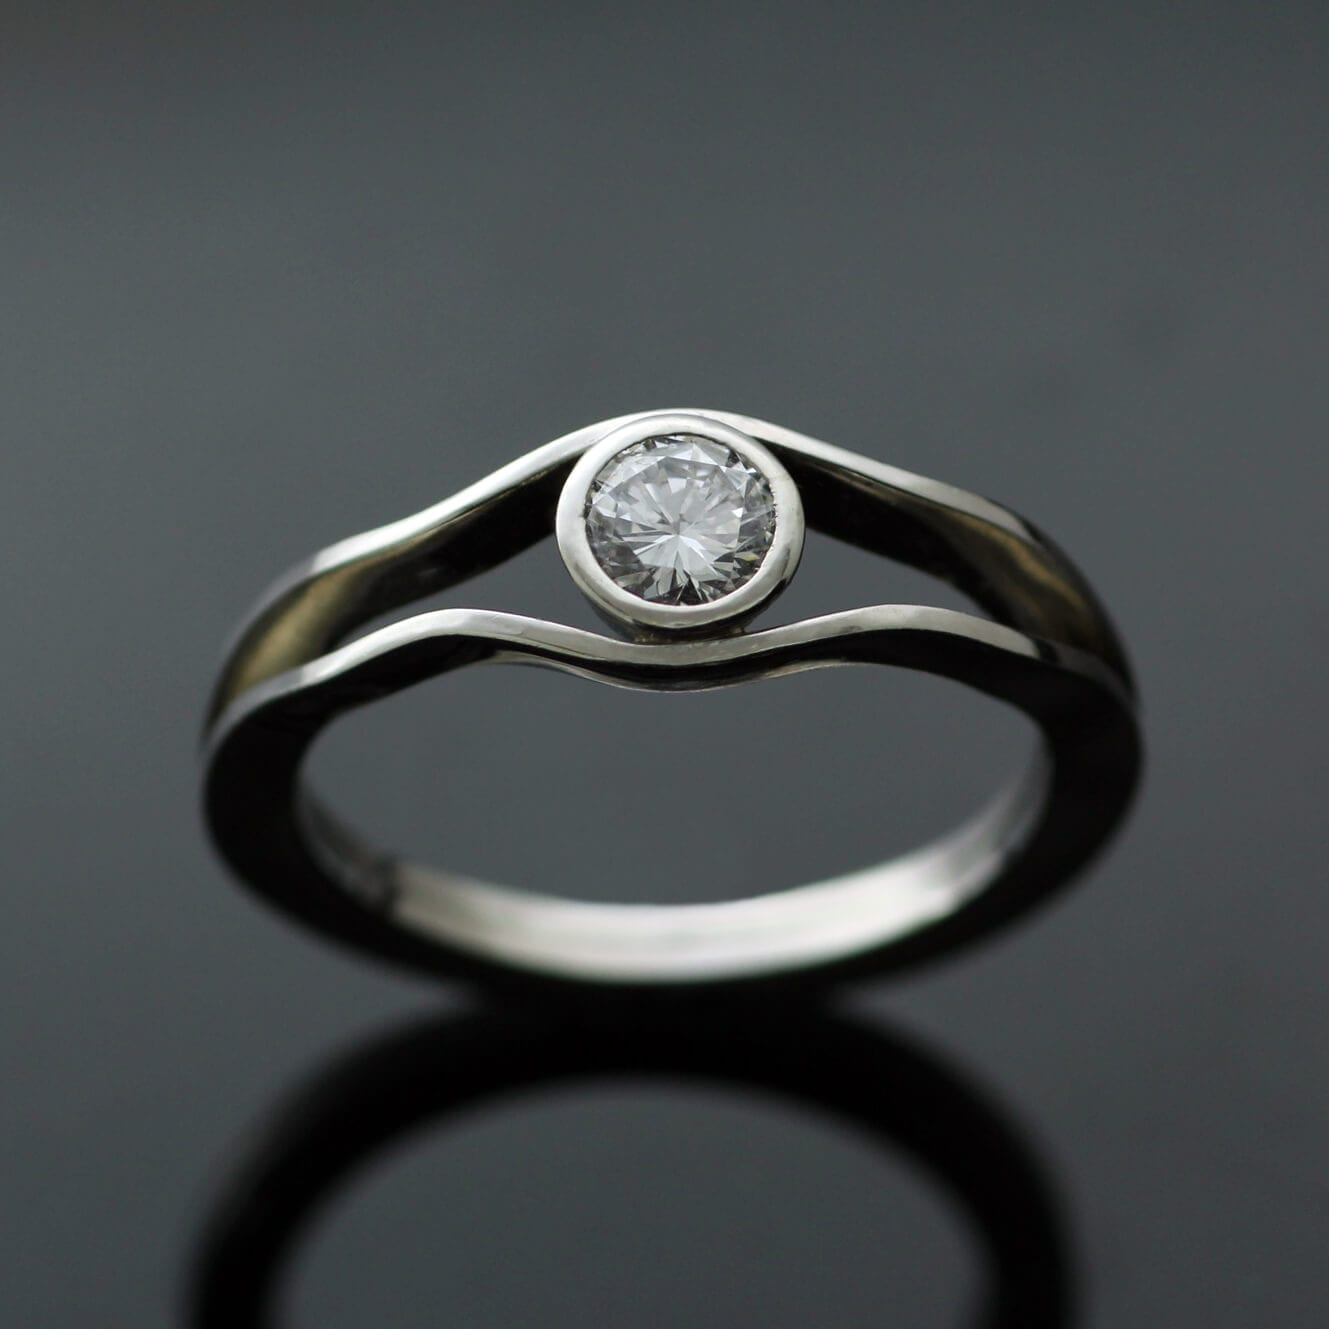 Handmade Platinum and 0.35ct Solitaire Diamond modern engagement ring